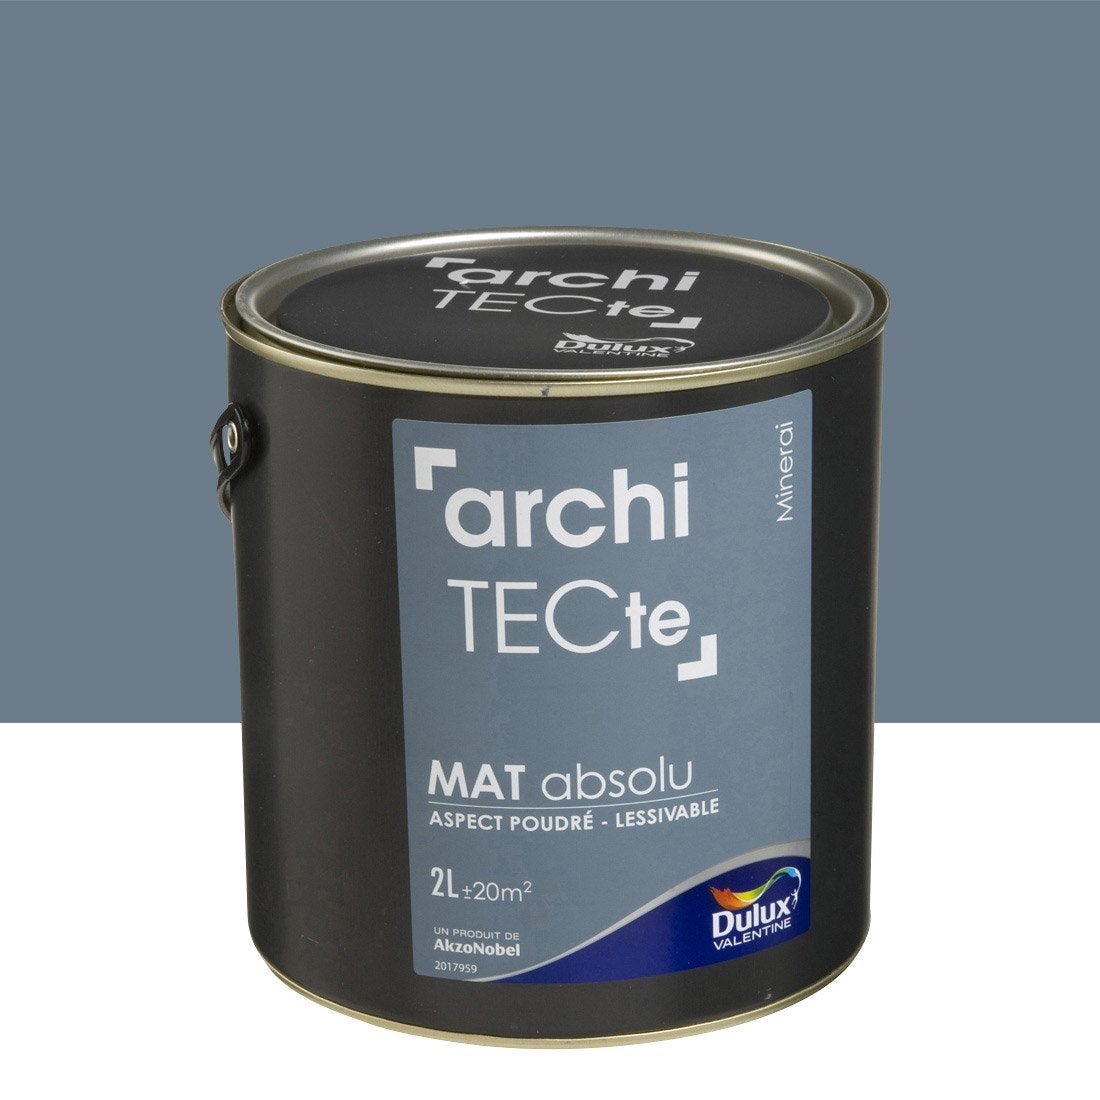 peinture gris minerai dulux valentine architecte 2 l leroy merlin. Black Bedroom Furniture Sets. Home Design Ideas